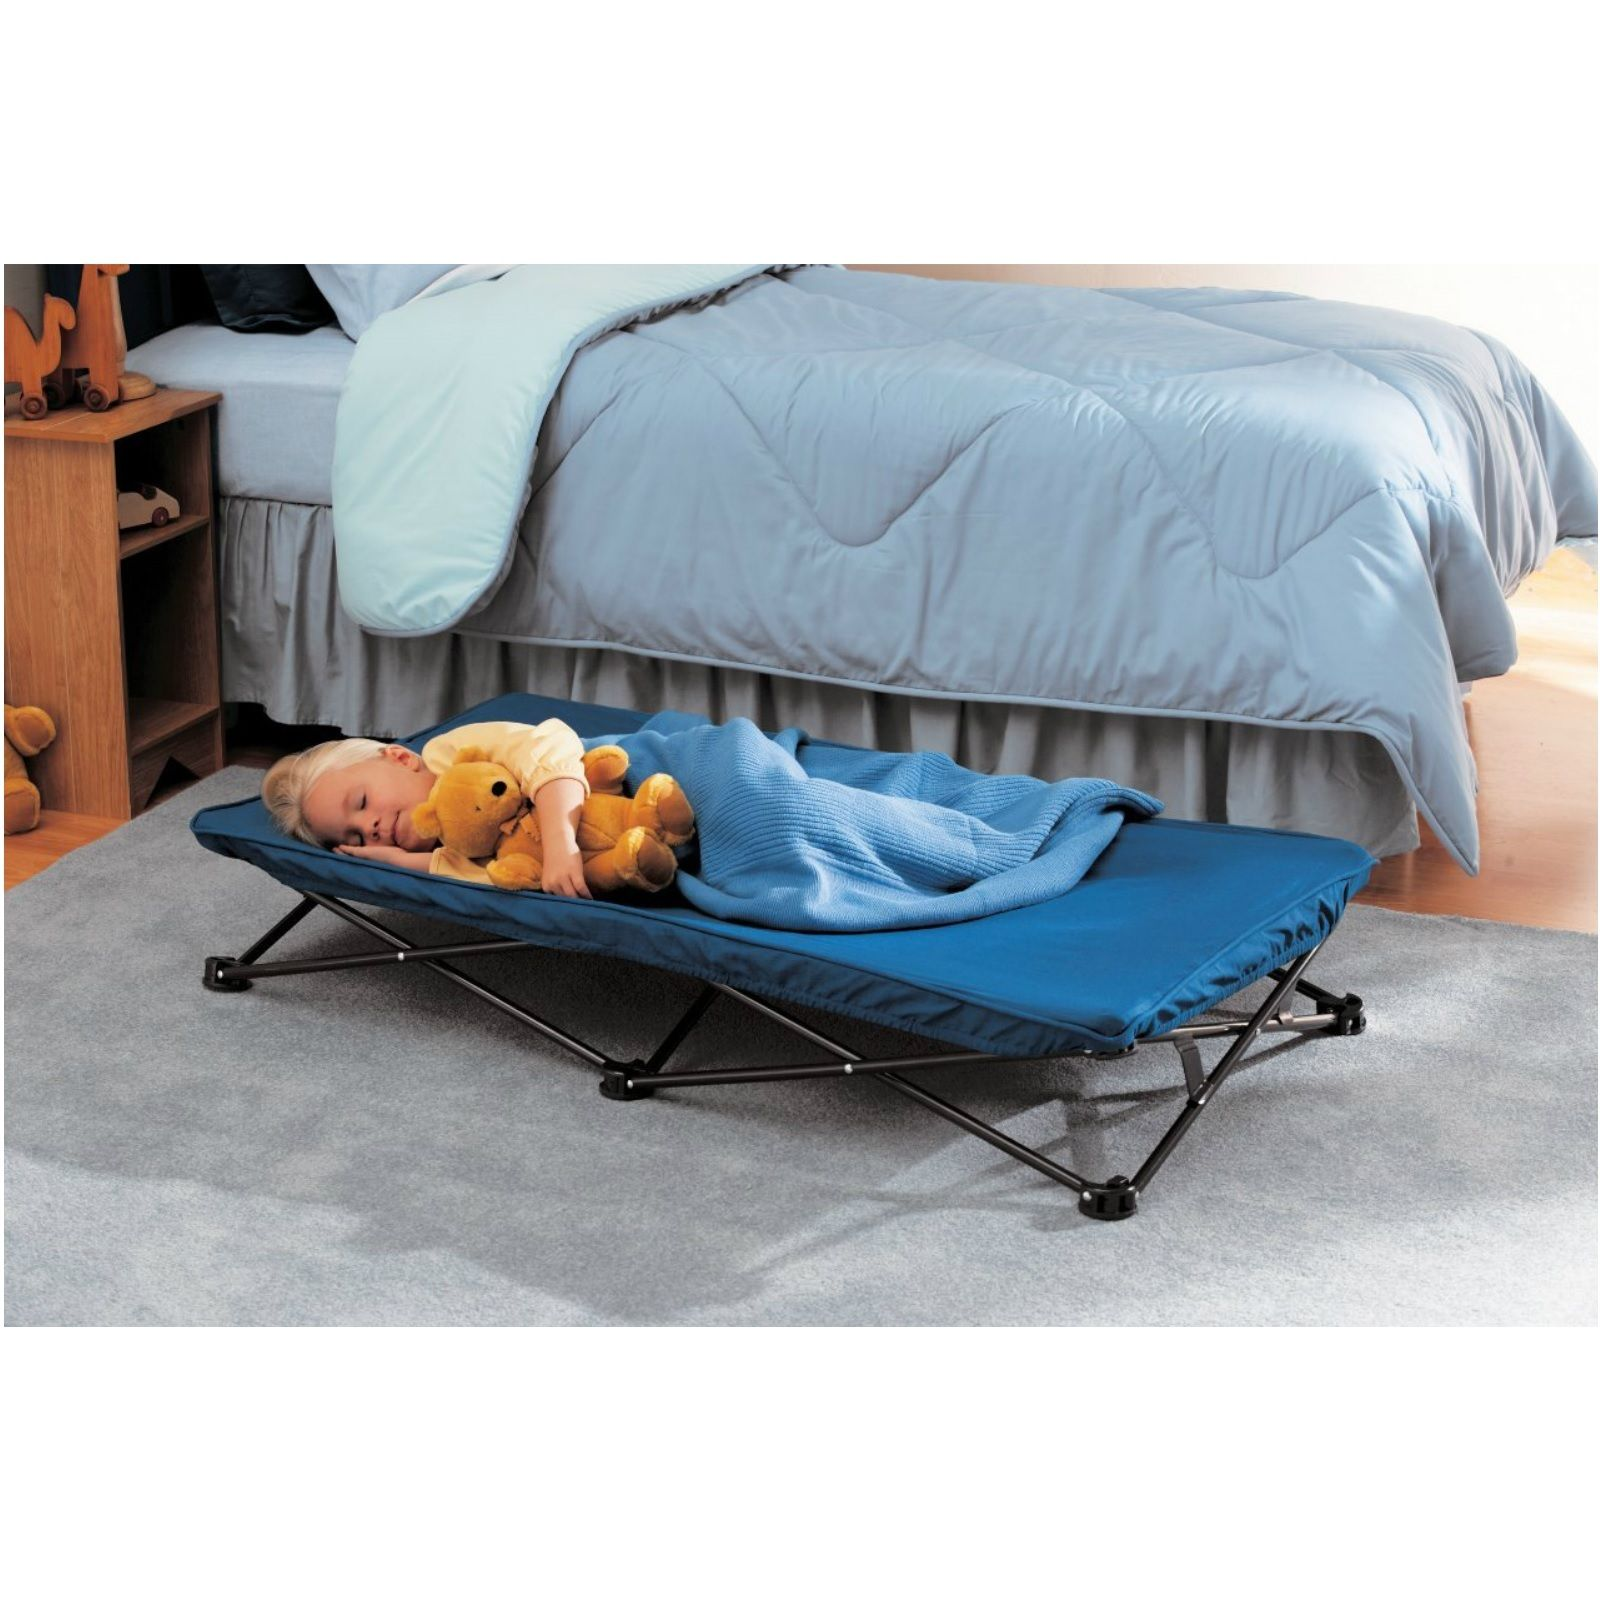 Portable Bed For Toddler